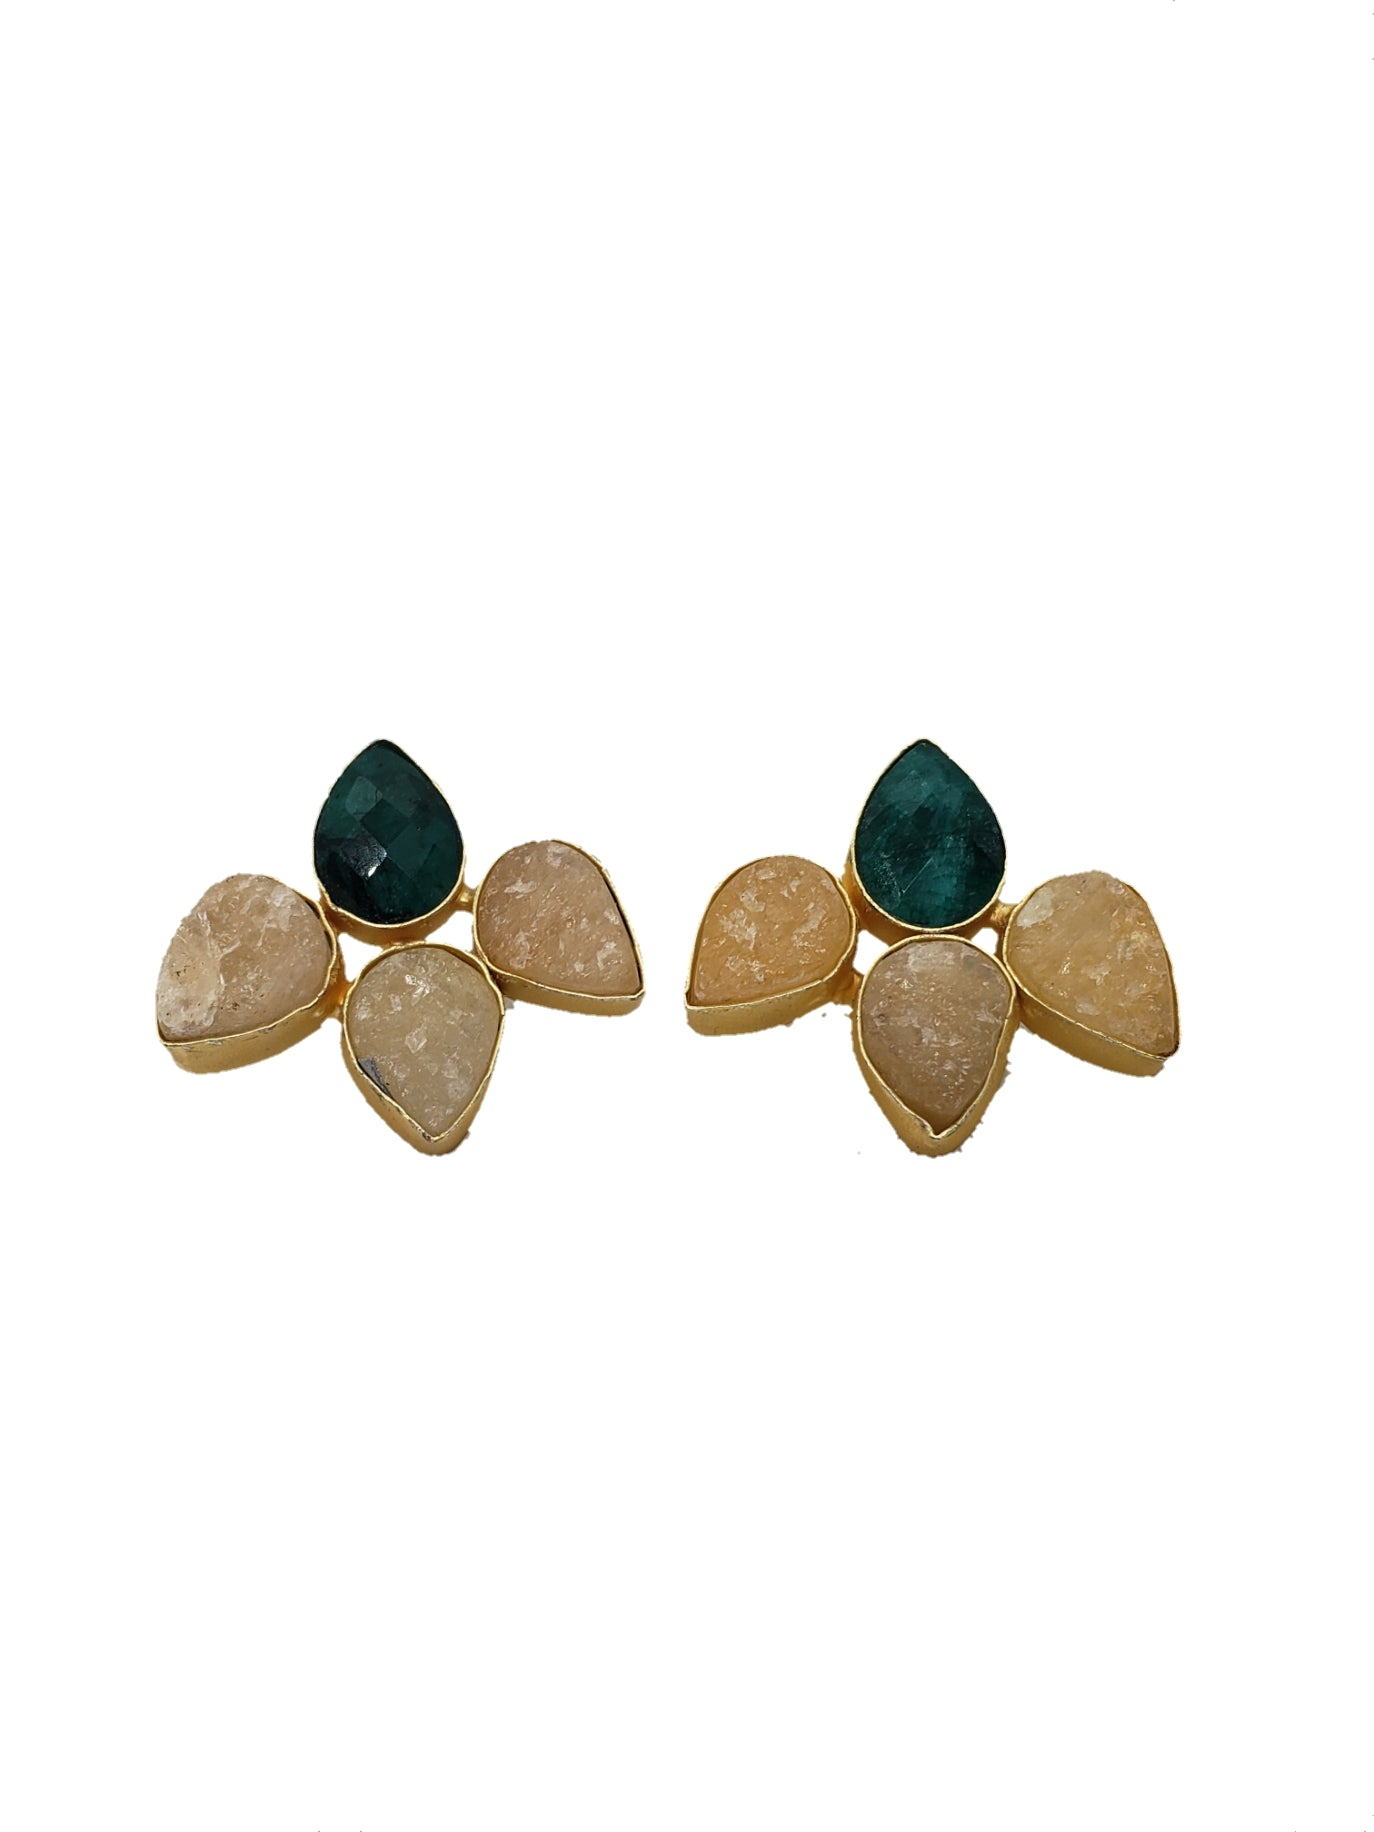 Citrine and Green Stone Stud Earrings - The Bauble Shop